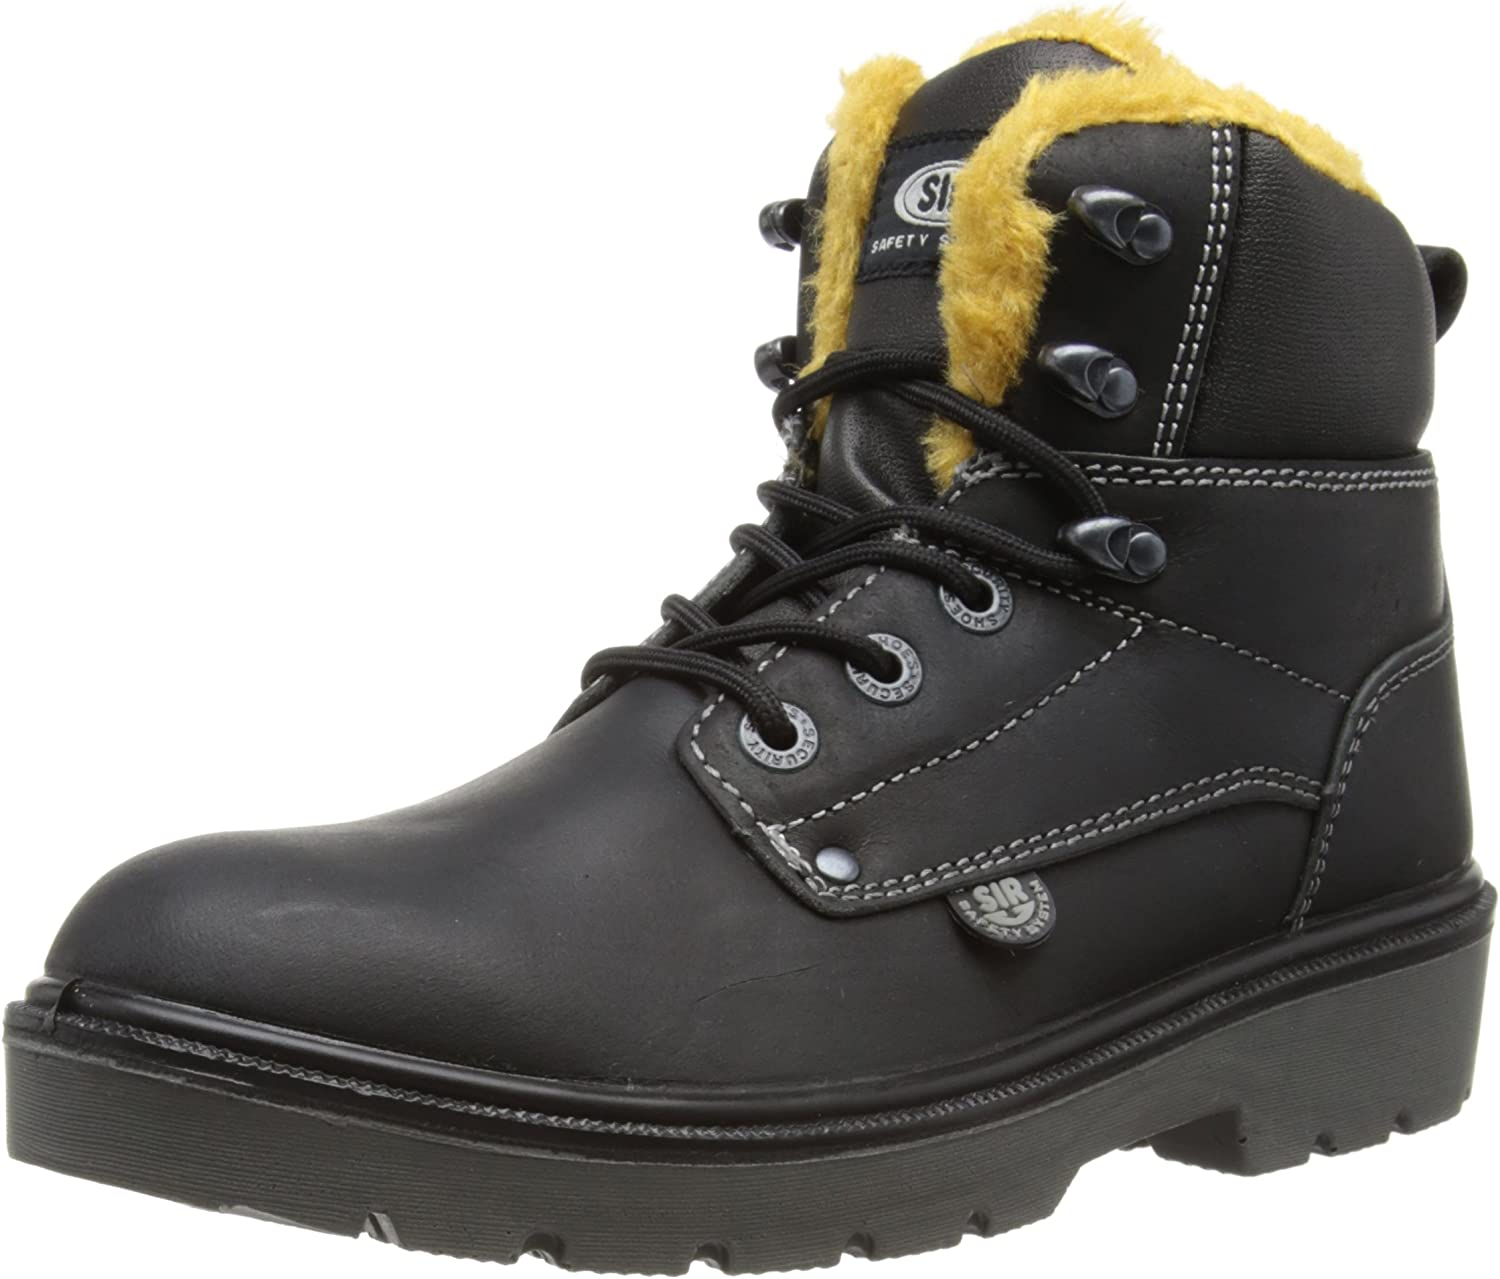 SIR Safety Unisex-Adult Winter Road High Safety Boots 26030A Black 12 UK, 46 EU